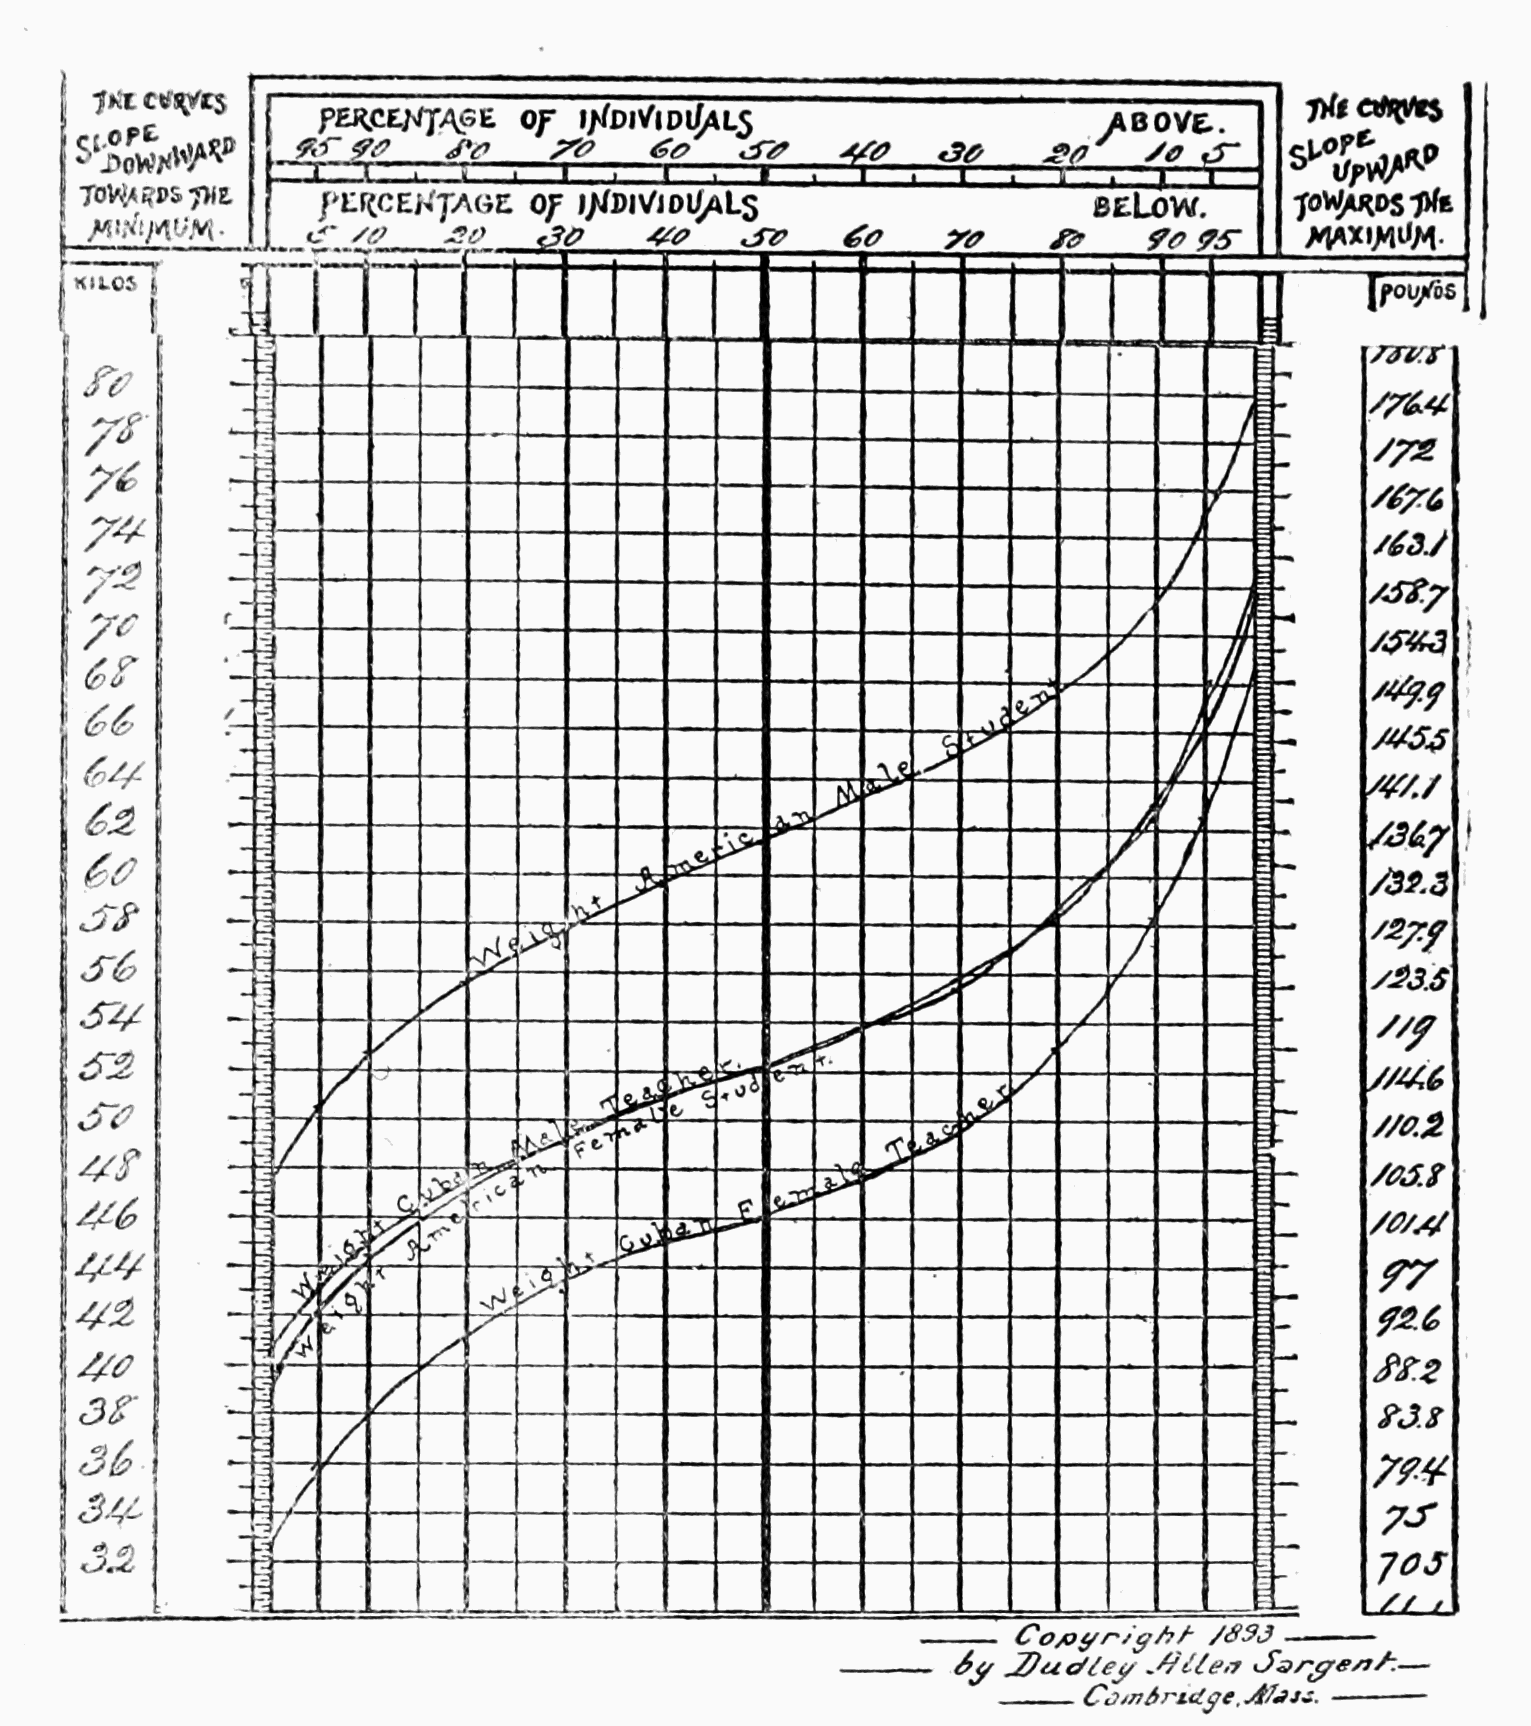 Popular science monthlyvolume 58march 1901the height and weight psm v58 d493 physical size differences between americans and cubansg chart 2 nvjuhfo Images